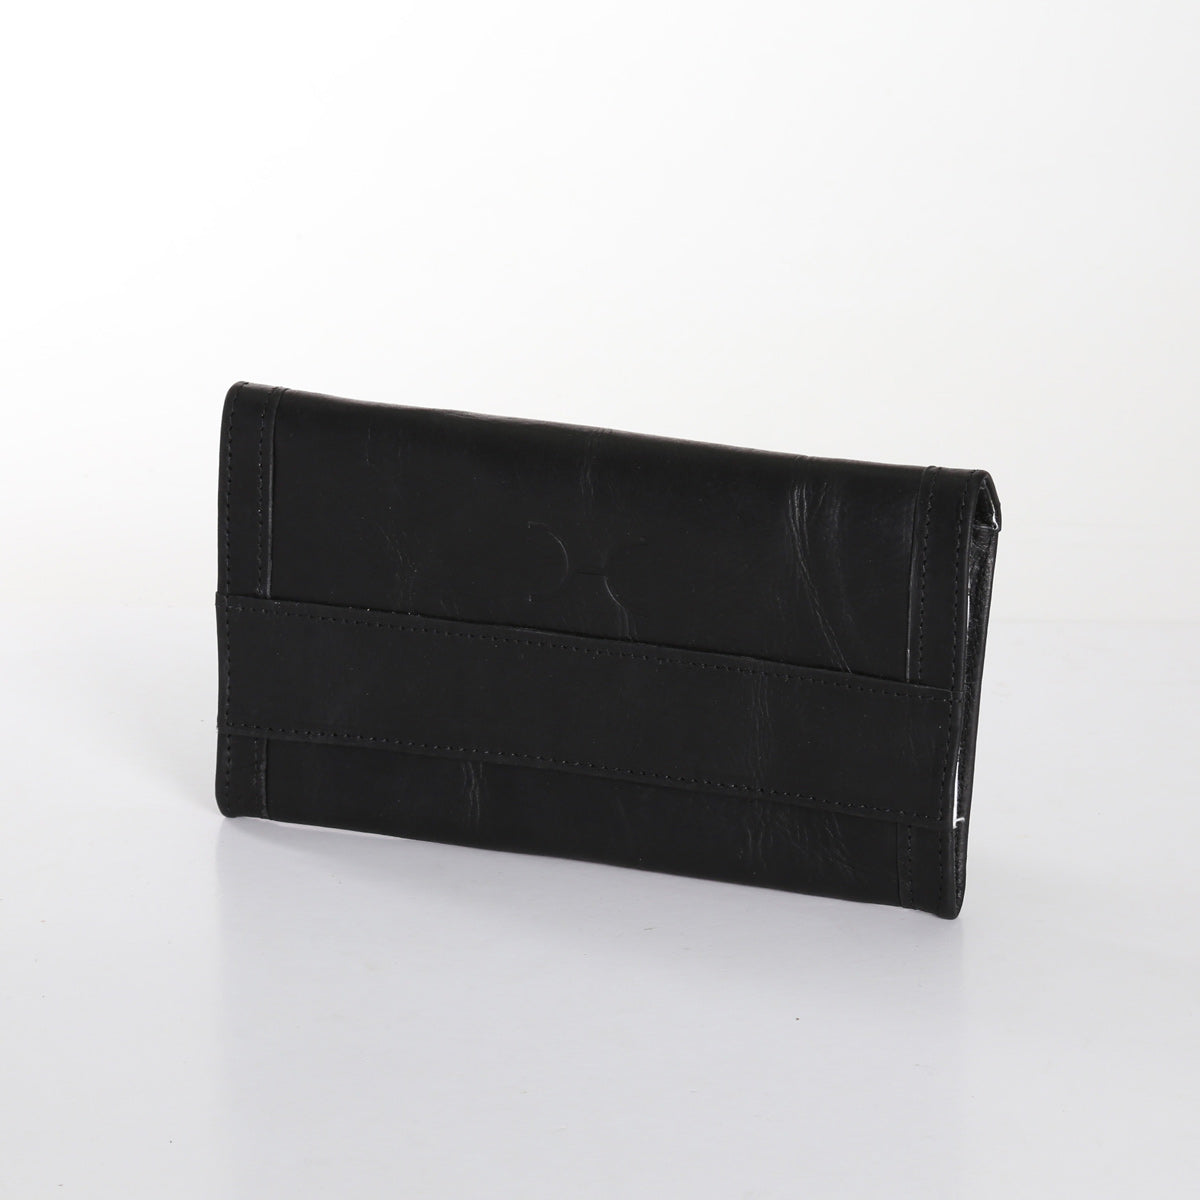 Thandana Travel Wallet - Black - Zufrique Boutique